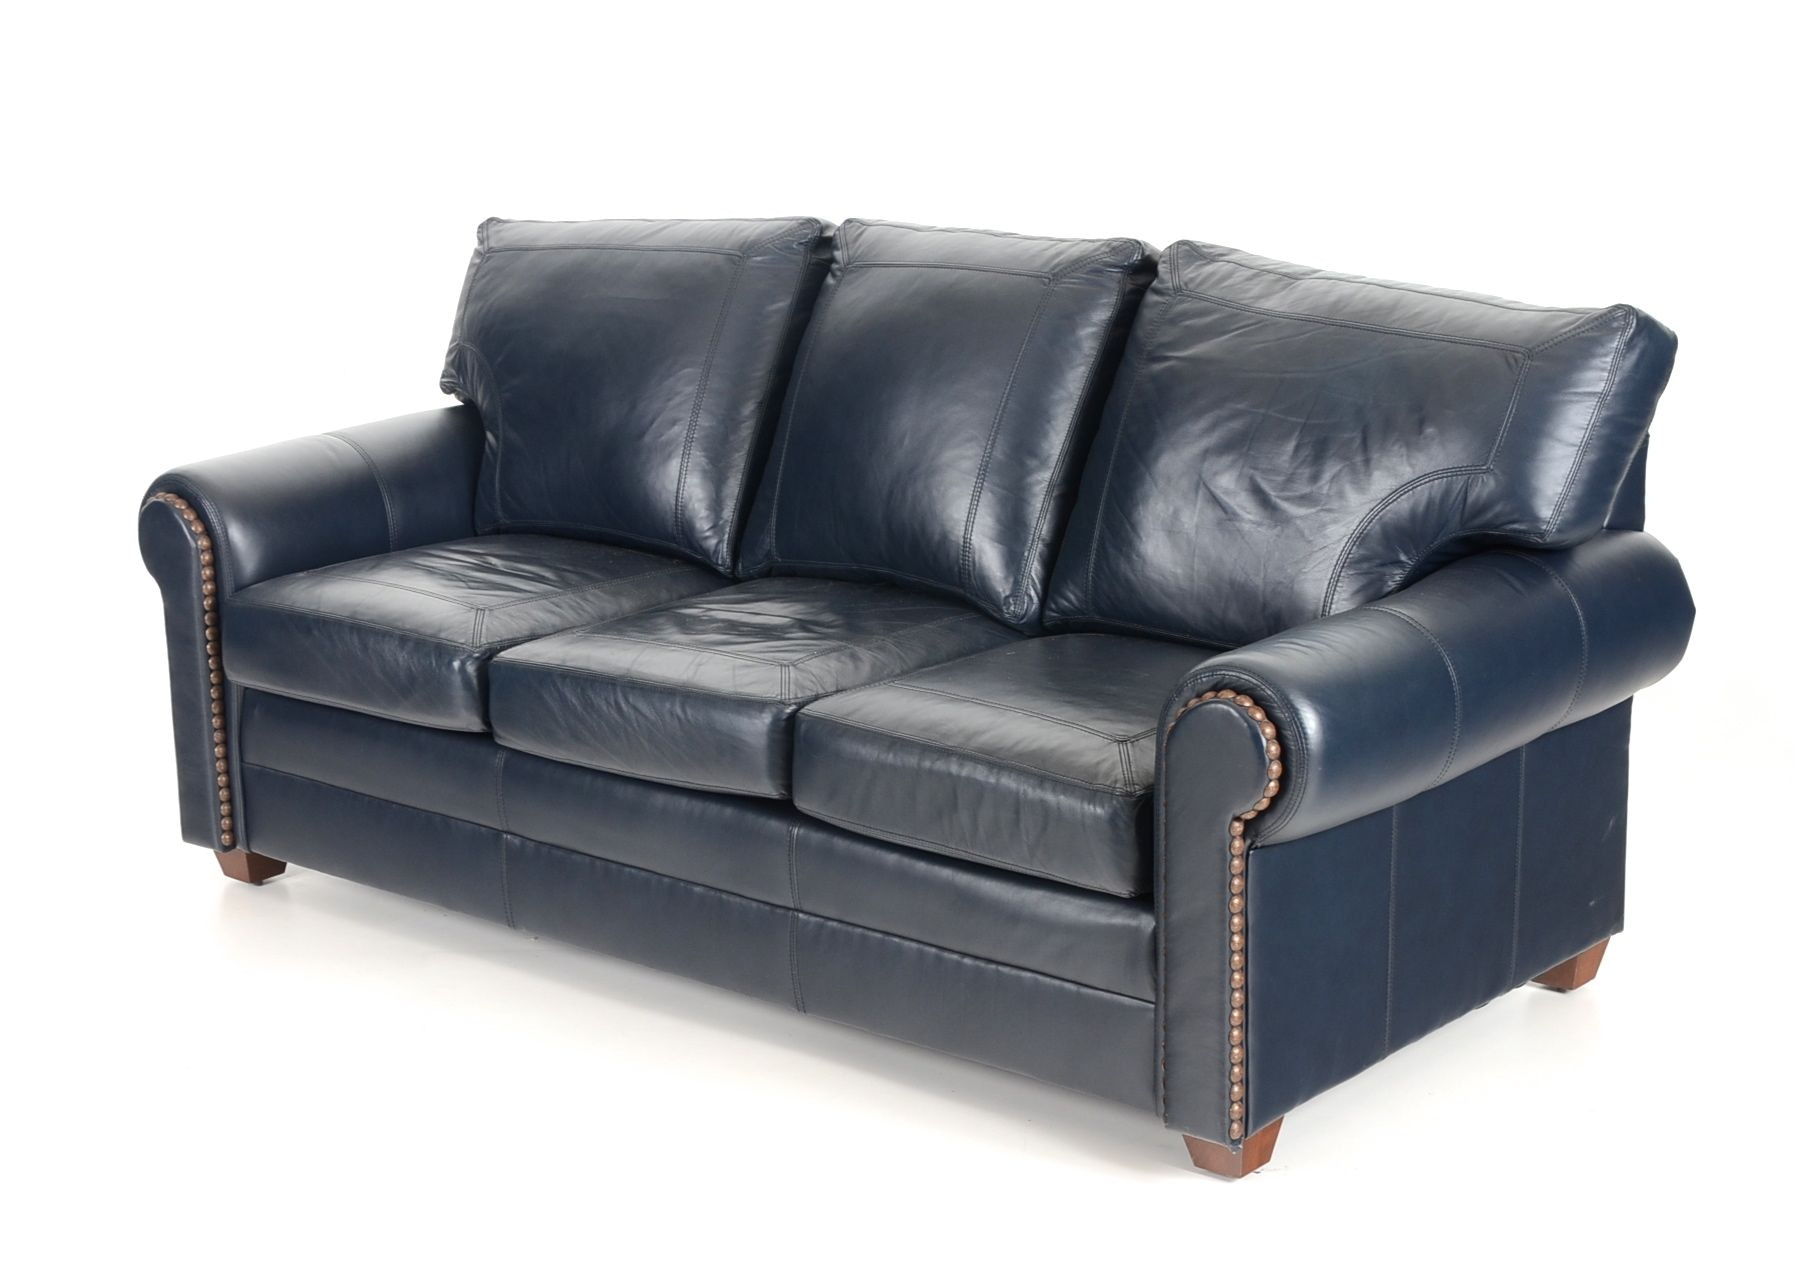 Navy Leather Sofa Donato Modern Leather Sectional - TheSofa